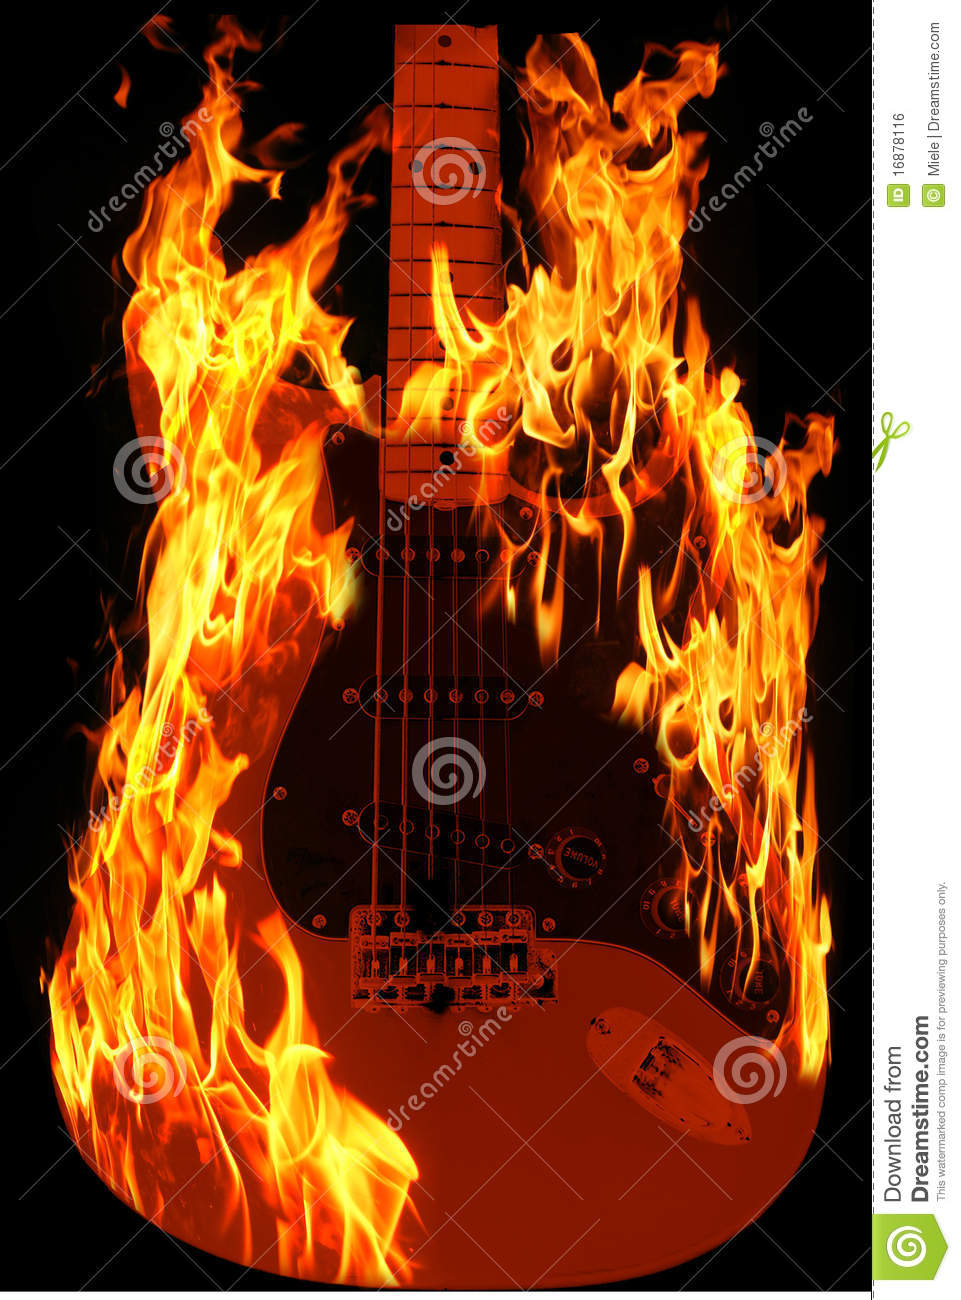 Guitar on fire stock photo. Image of artistic, classical ...